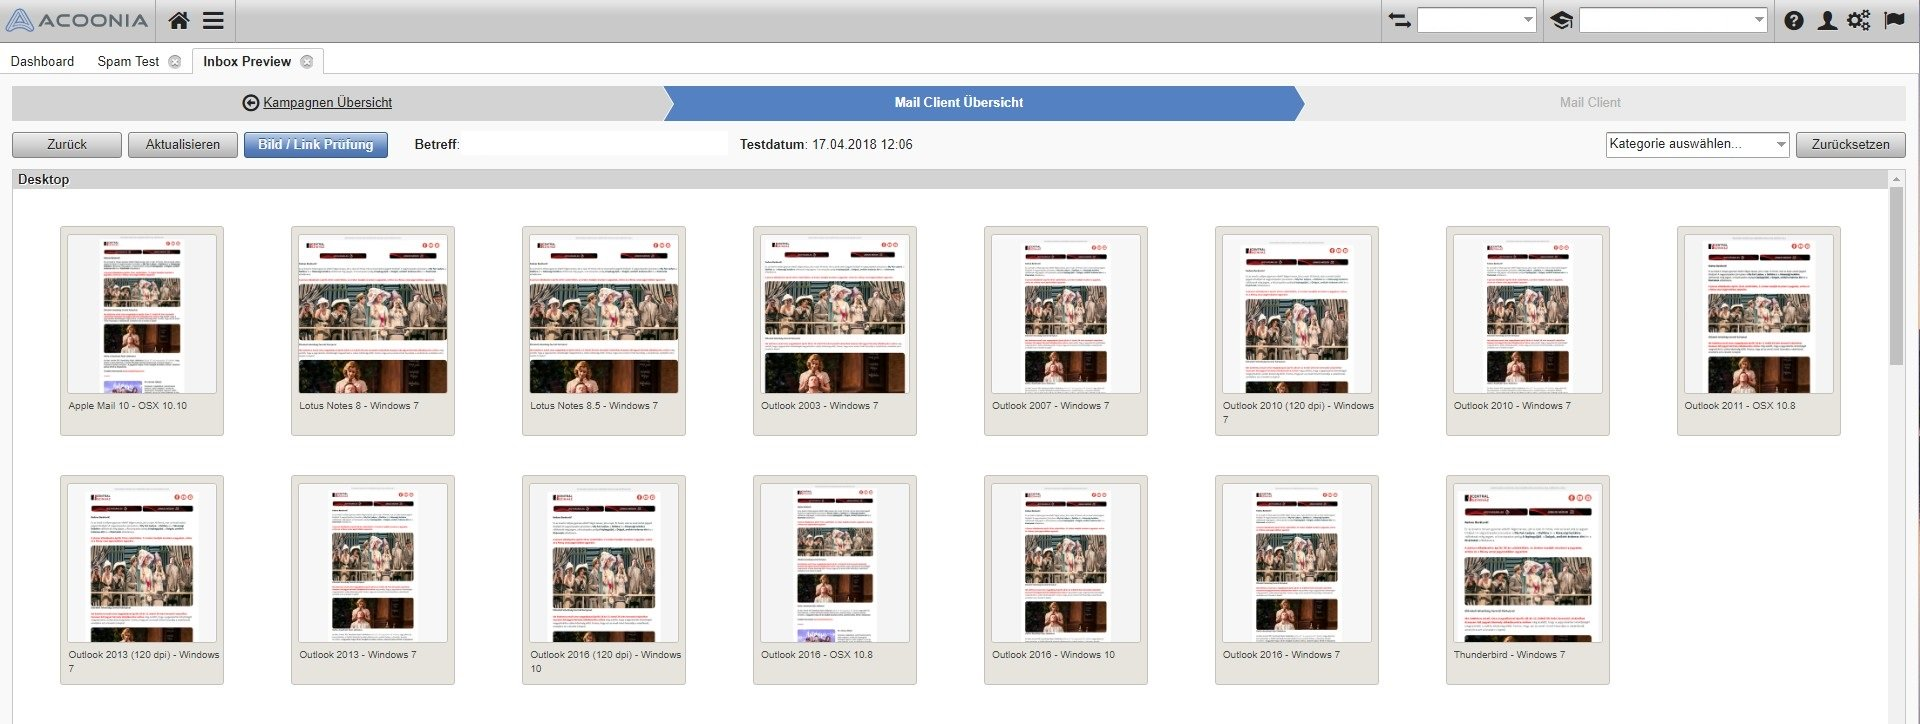 Inbox Preview Kampagne Desktop Clients